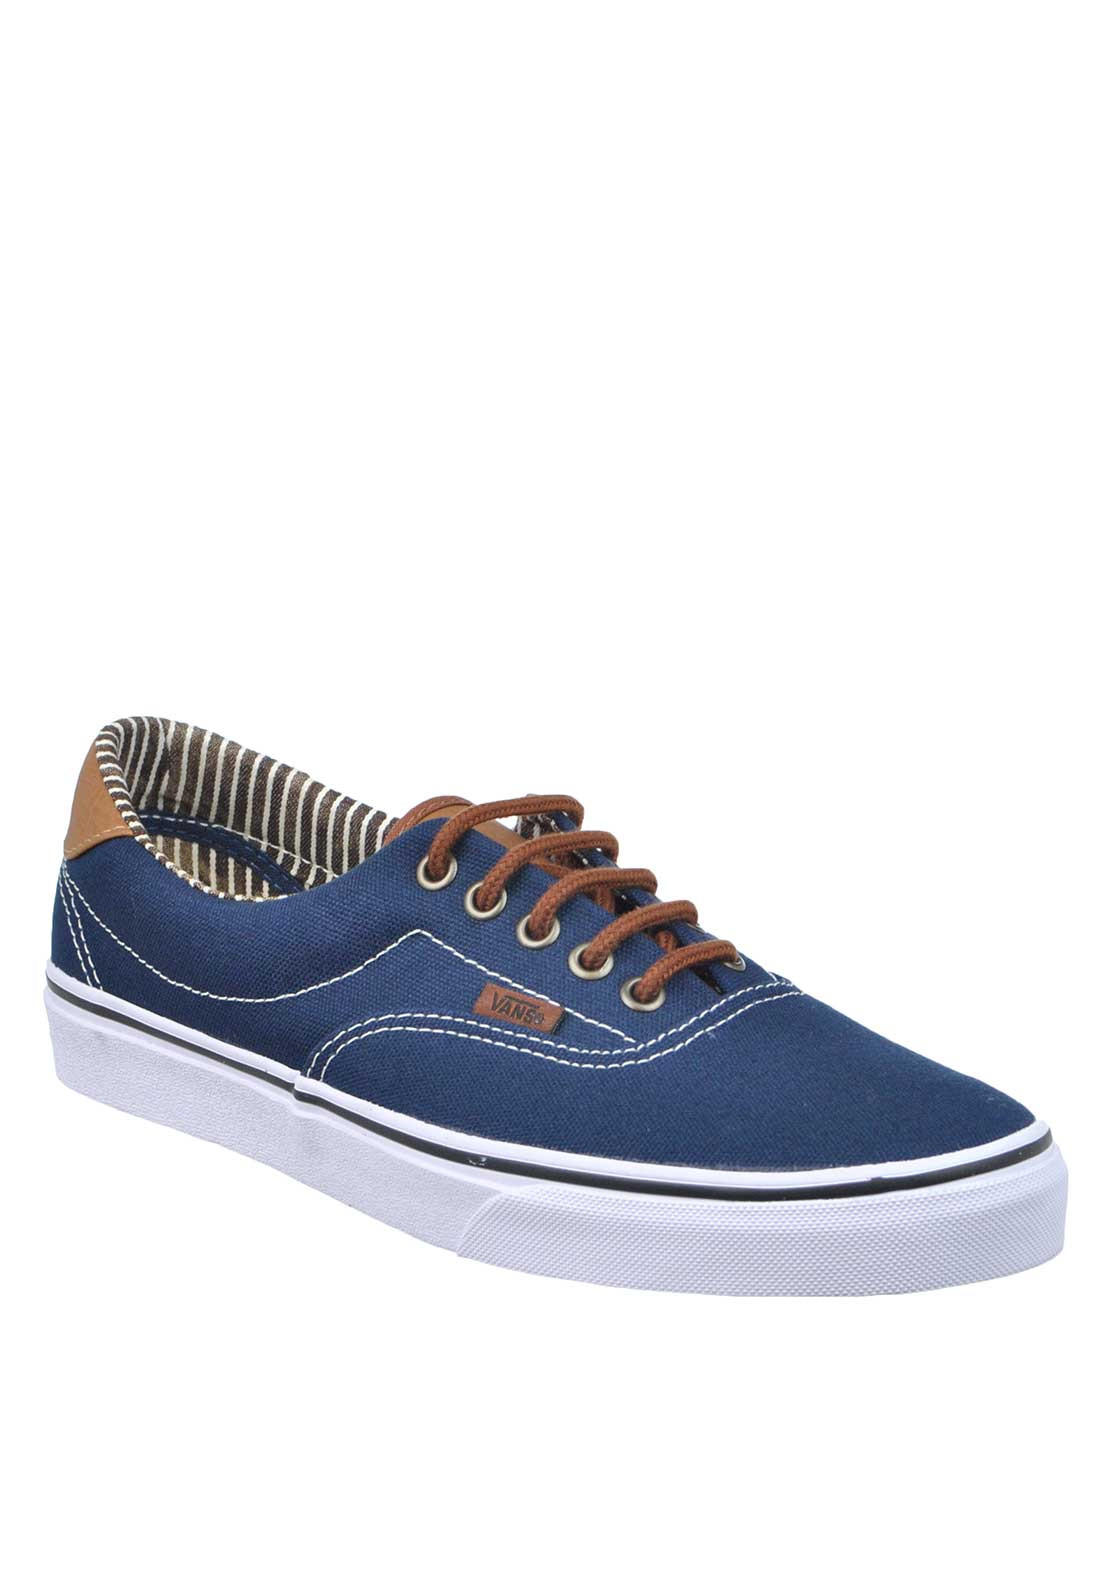 Vans Mens C&L Era 59 Lace Up Trainers, Navy